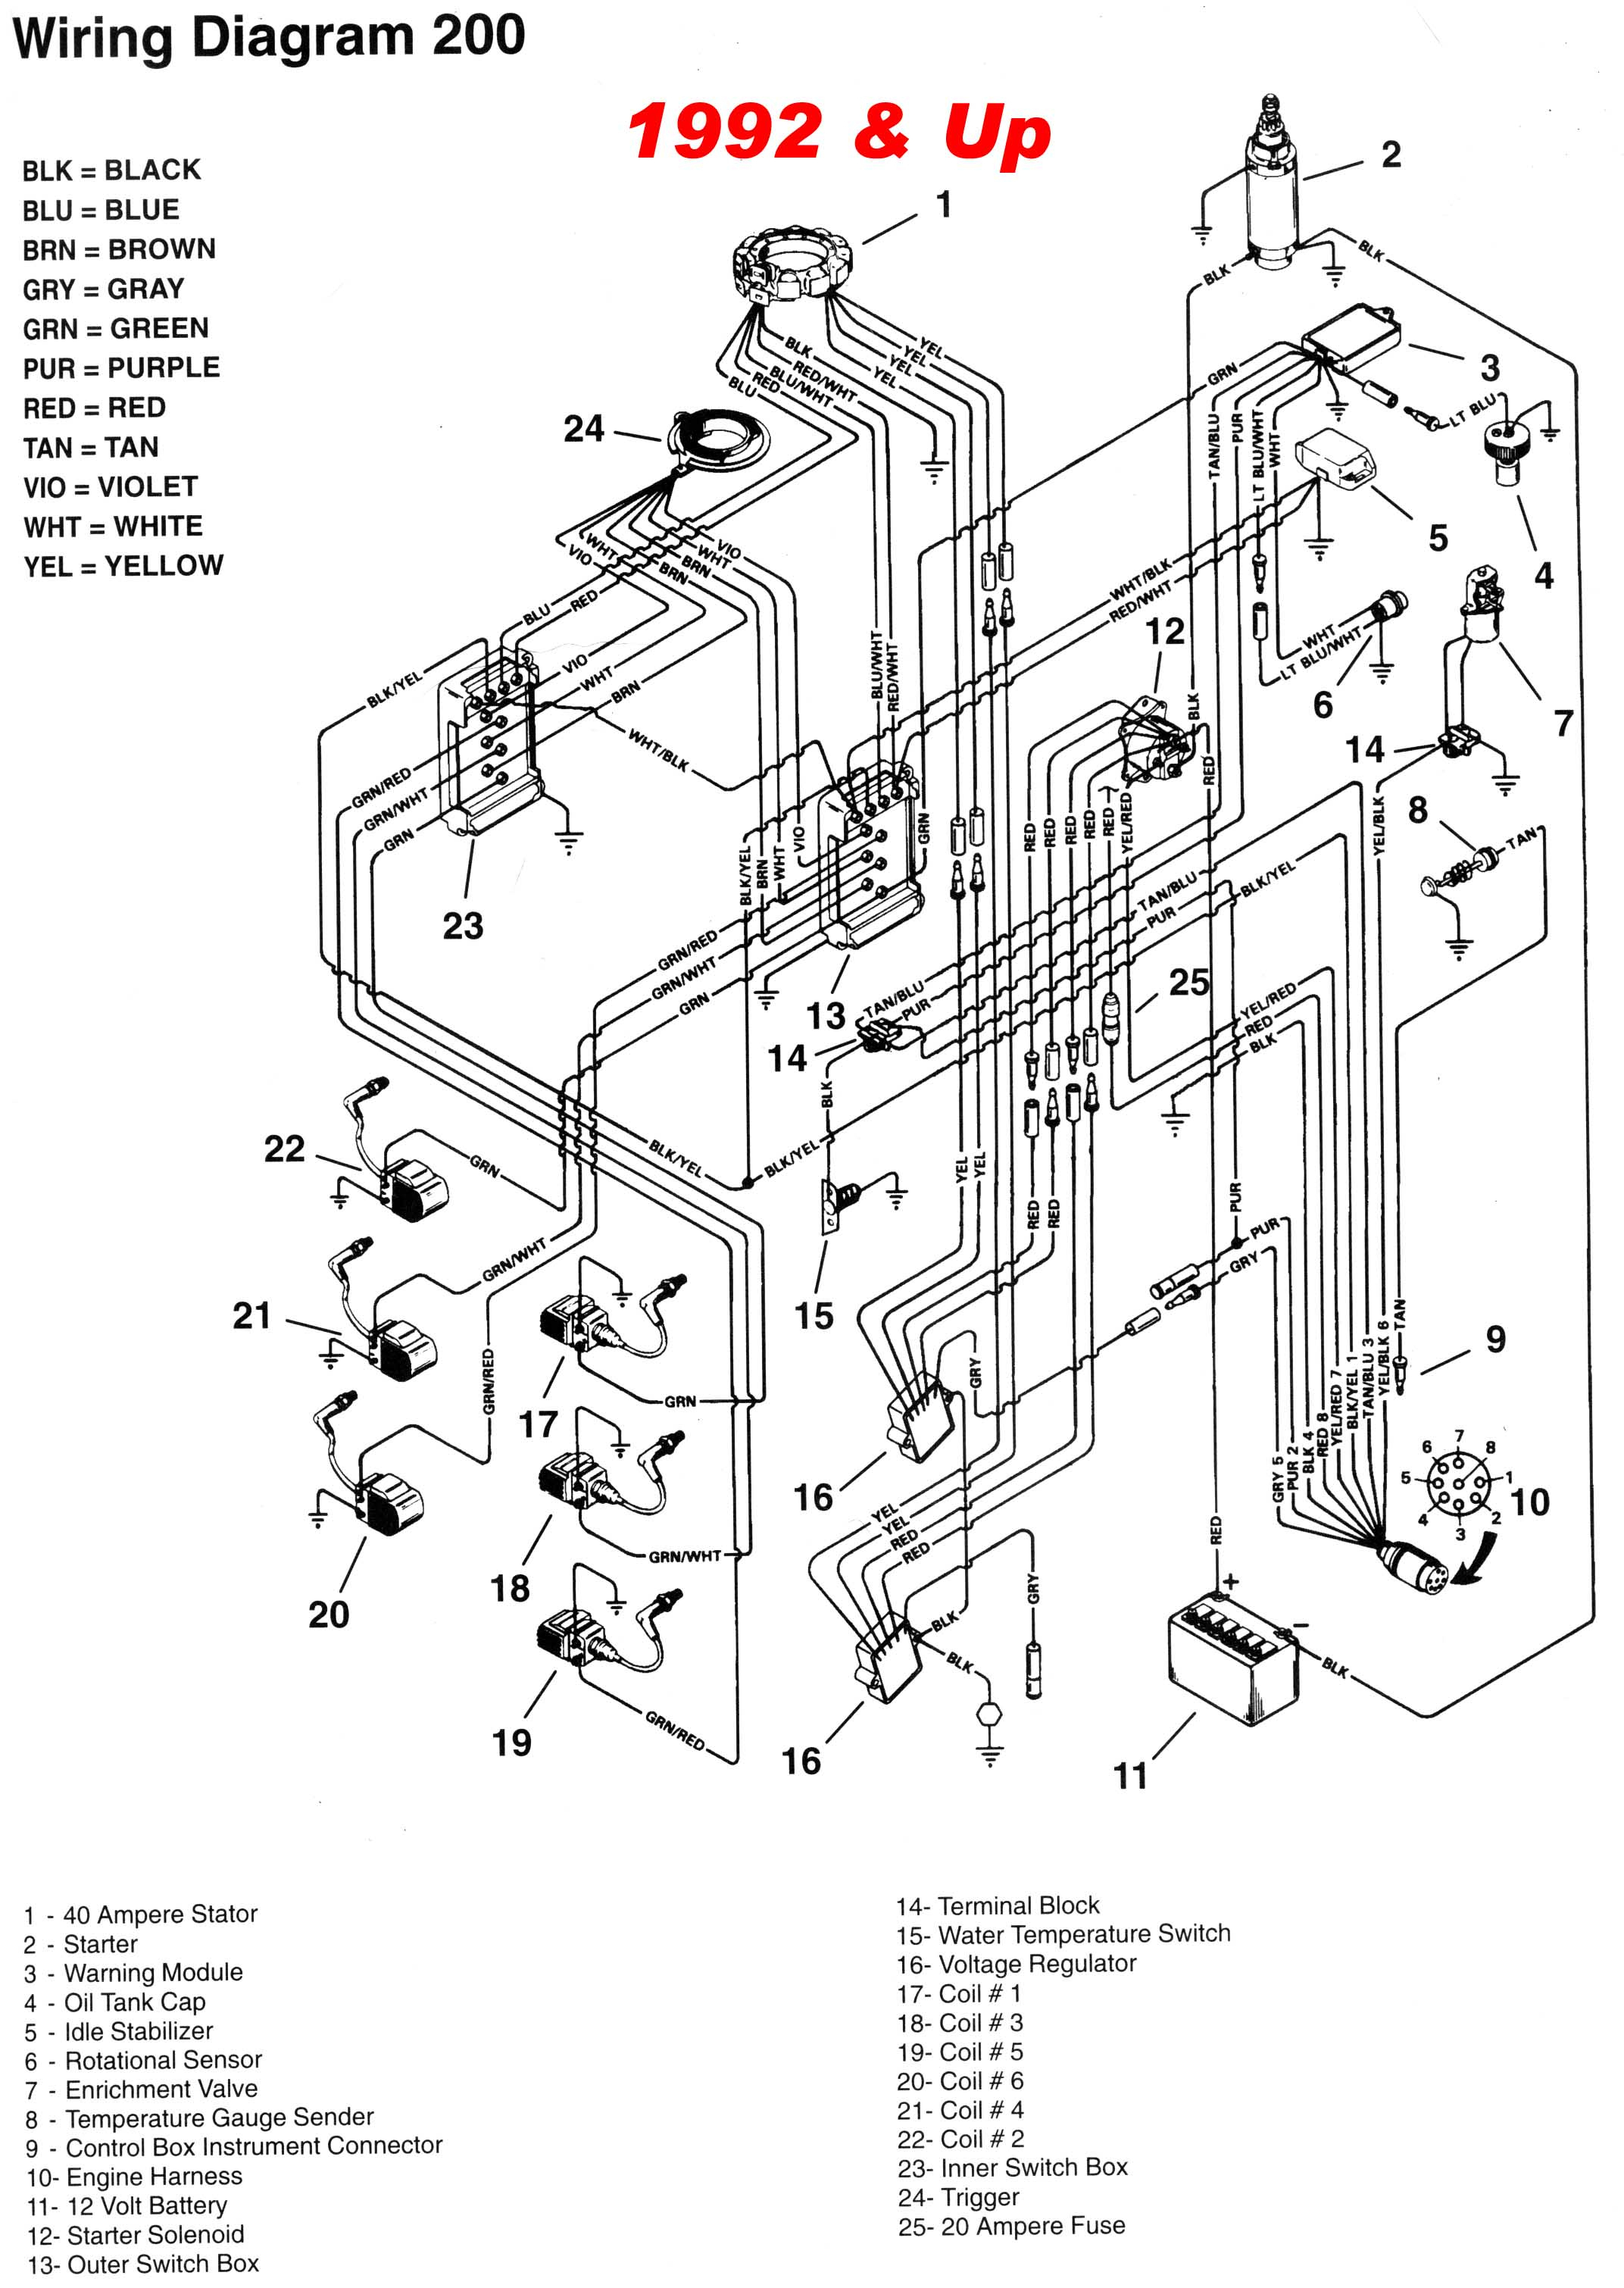 50 Hp Mercury Outboard Wiring Diagram - Wiring Diagram Explained - Evinrude Ignition Switch Wiring Diagram